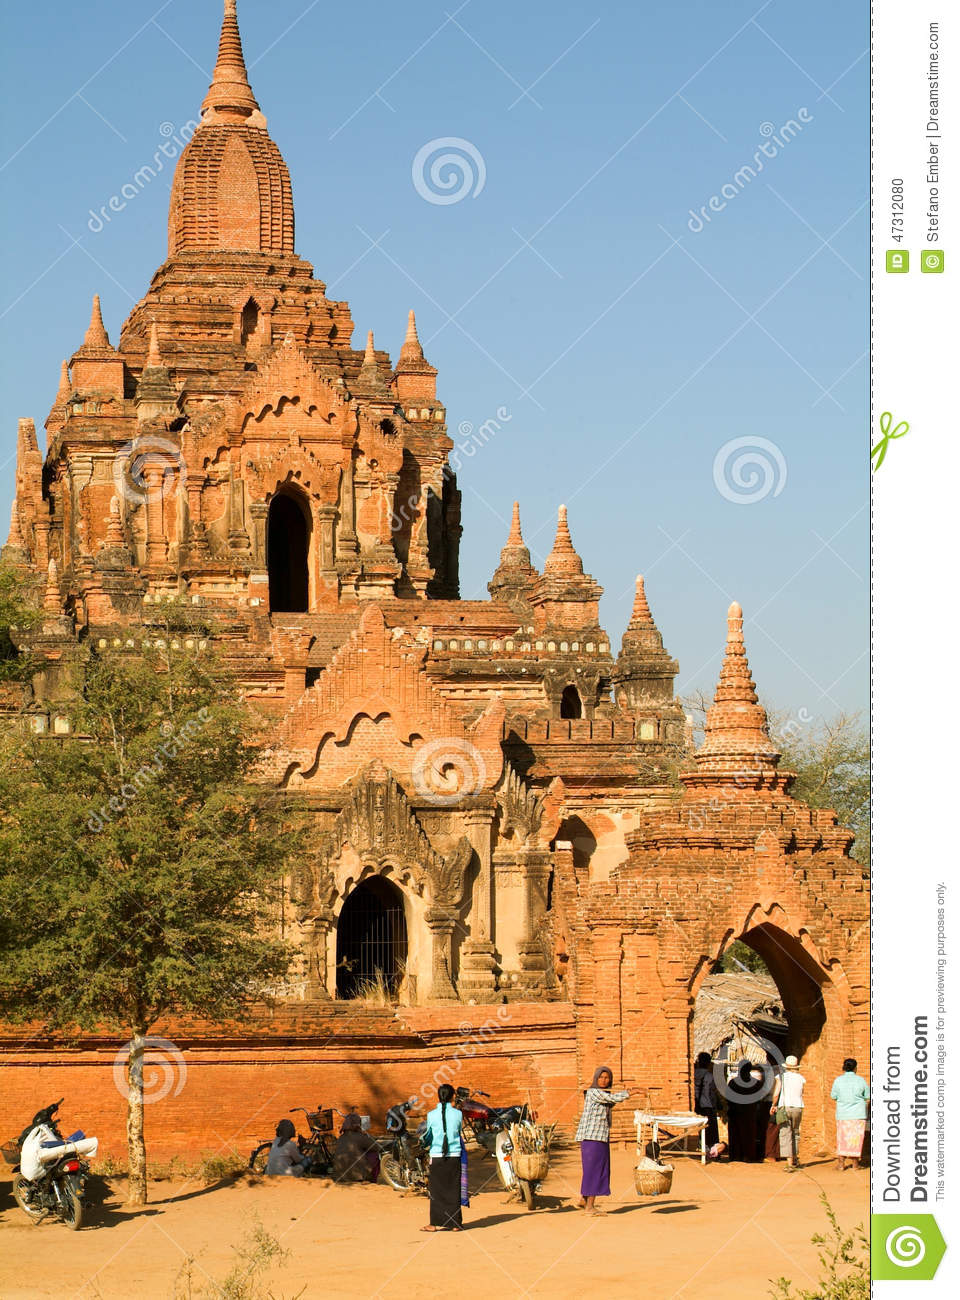 Pyi Myanmar Daily Journal: People Walking In Front Of Tayok Pyi Temple At The